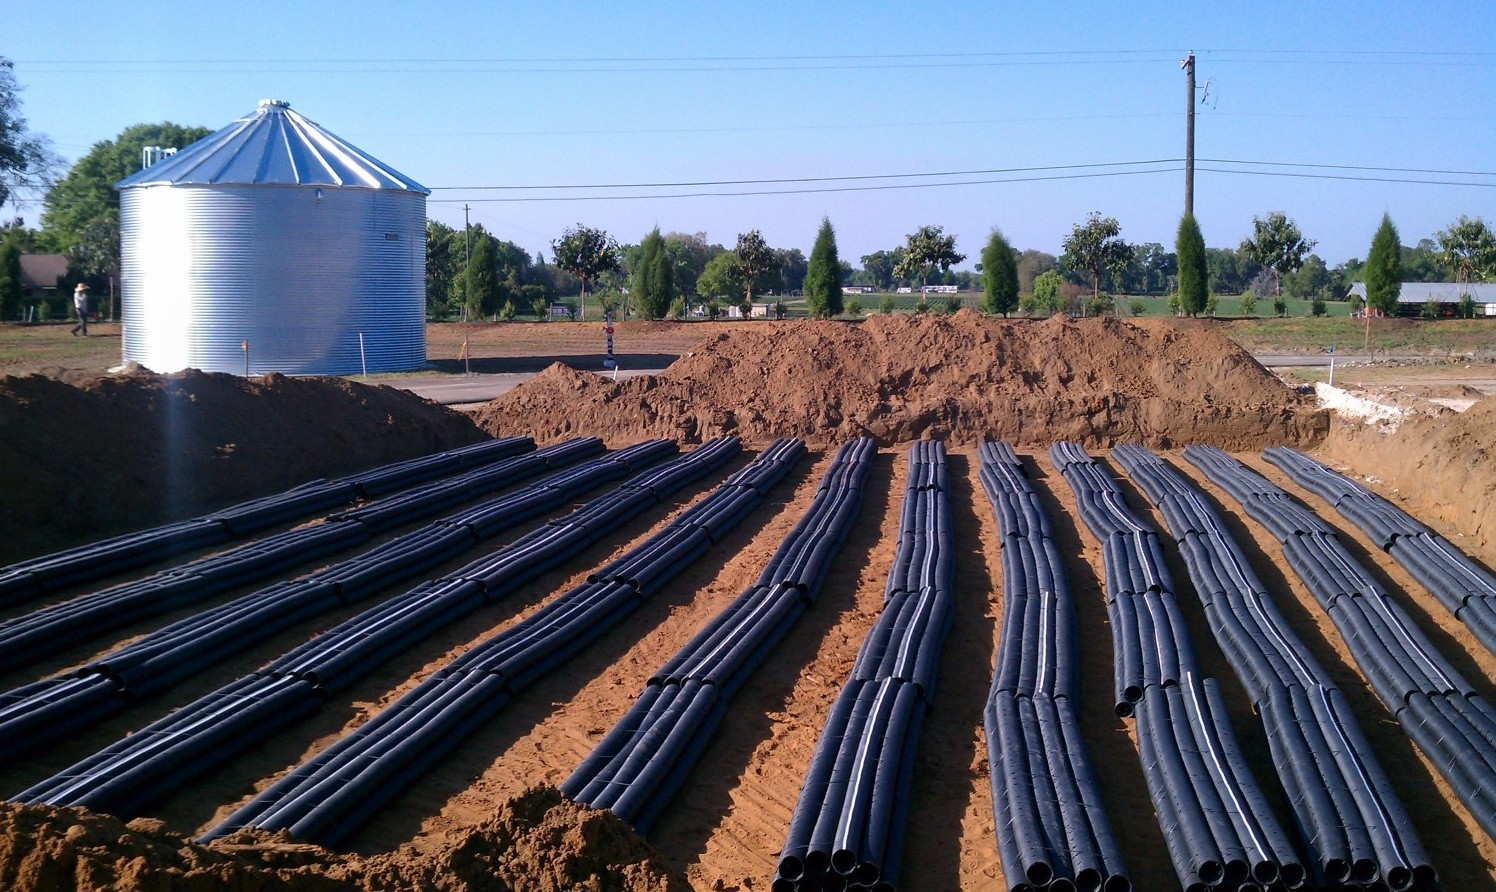 Business Septic System-Houston TX Septic Tank Pumping, Installation, & Repairs-We offer Septic Service & Repairs, Septic Tank Installations, Septic Tank Cleaning, Commercial, Septic System, Drain Cleaning, Line Snaking, Portable Toilet, Grease Trap Pumping & Cleaning, Septic Tank Pumping, Sewage Pump, Sewer Line Repair, Septic Tank Replacement, Septic Maintenance, Sewer Line Replacement, Porta Potty Rentals, and more.